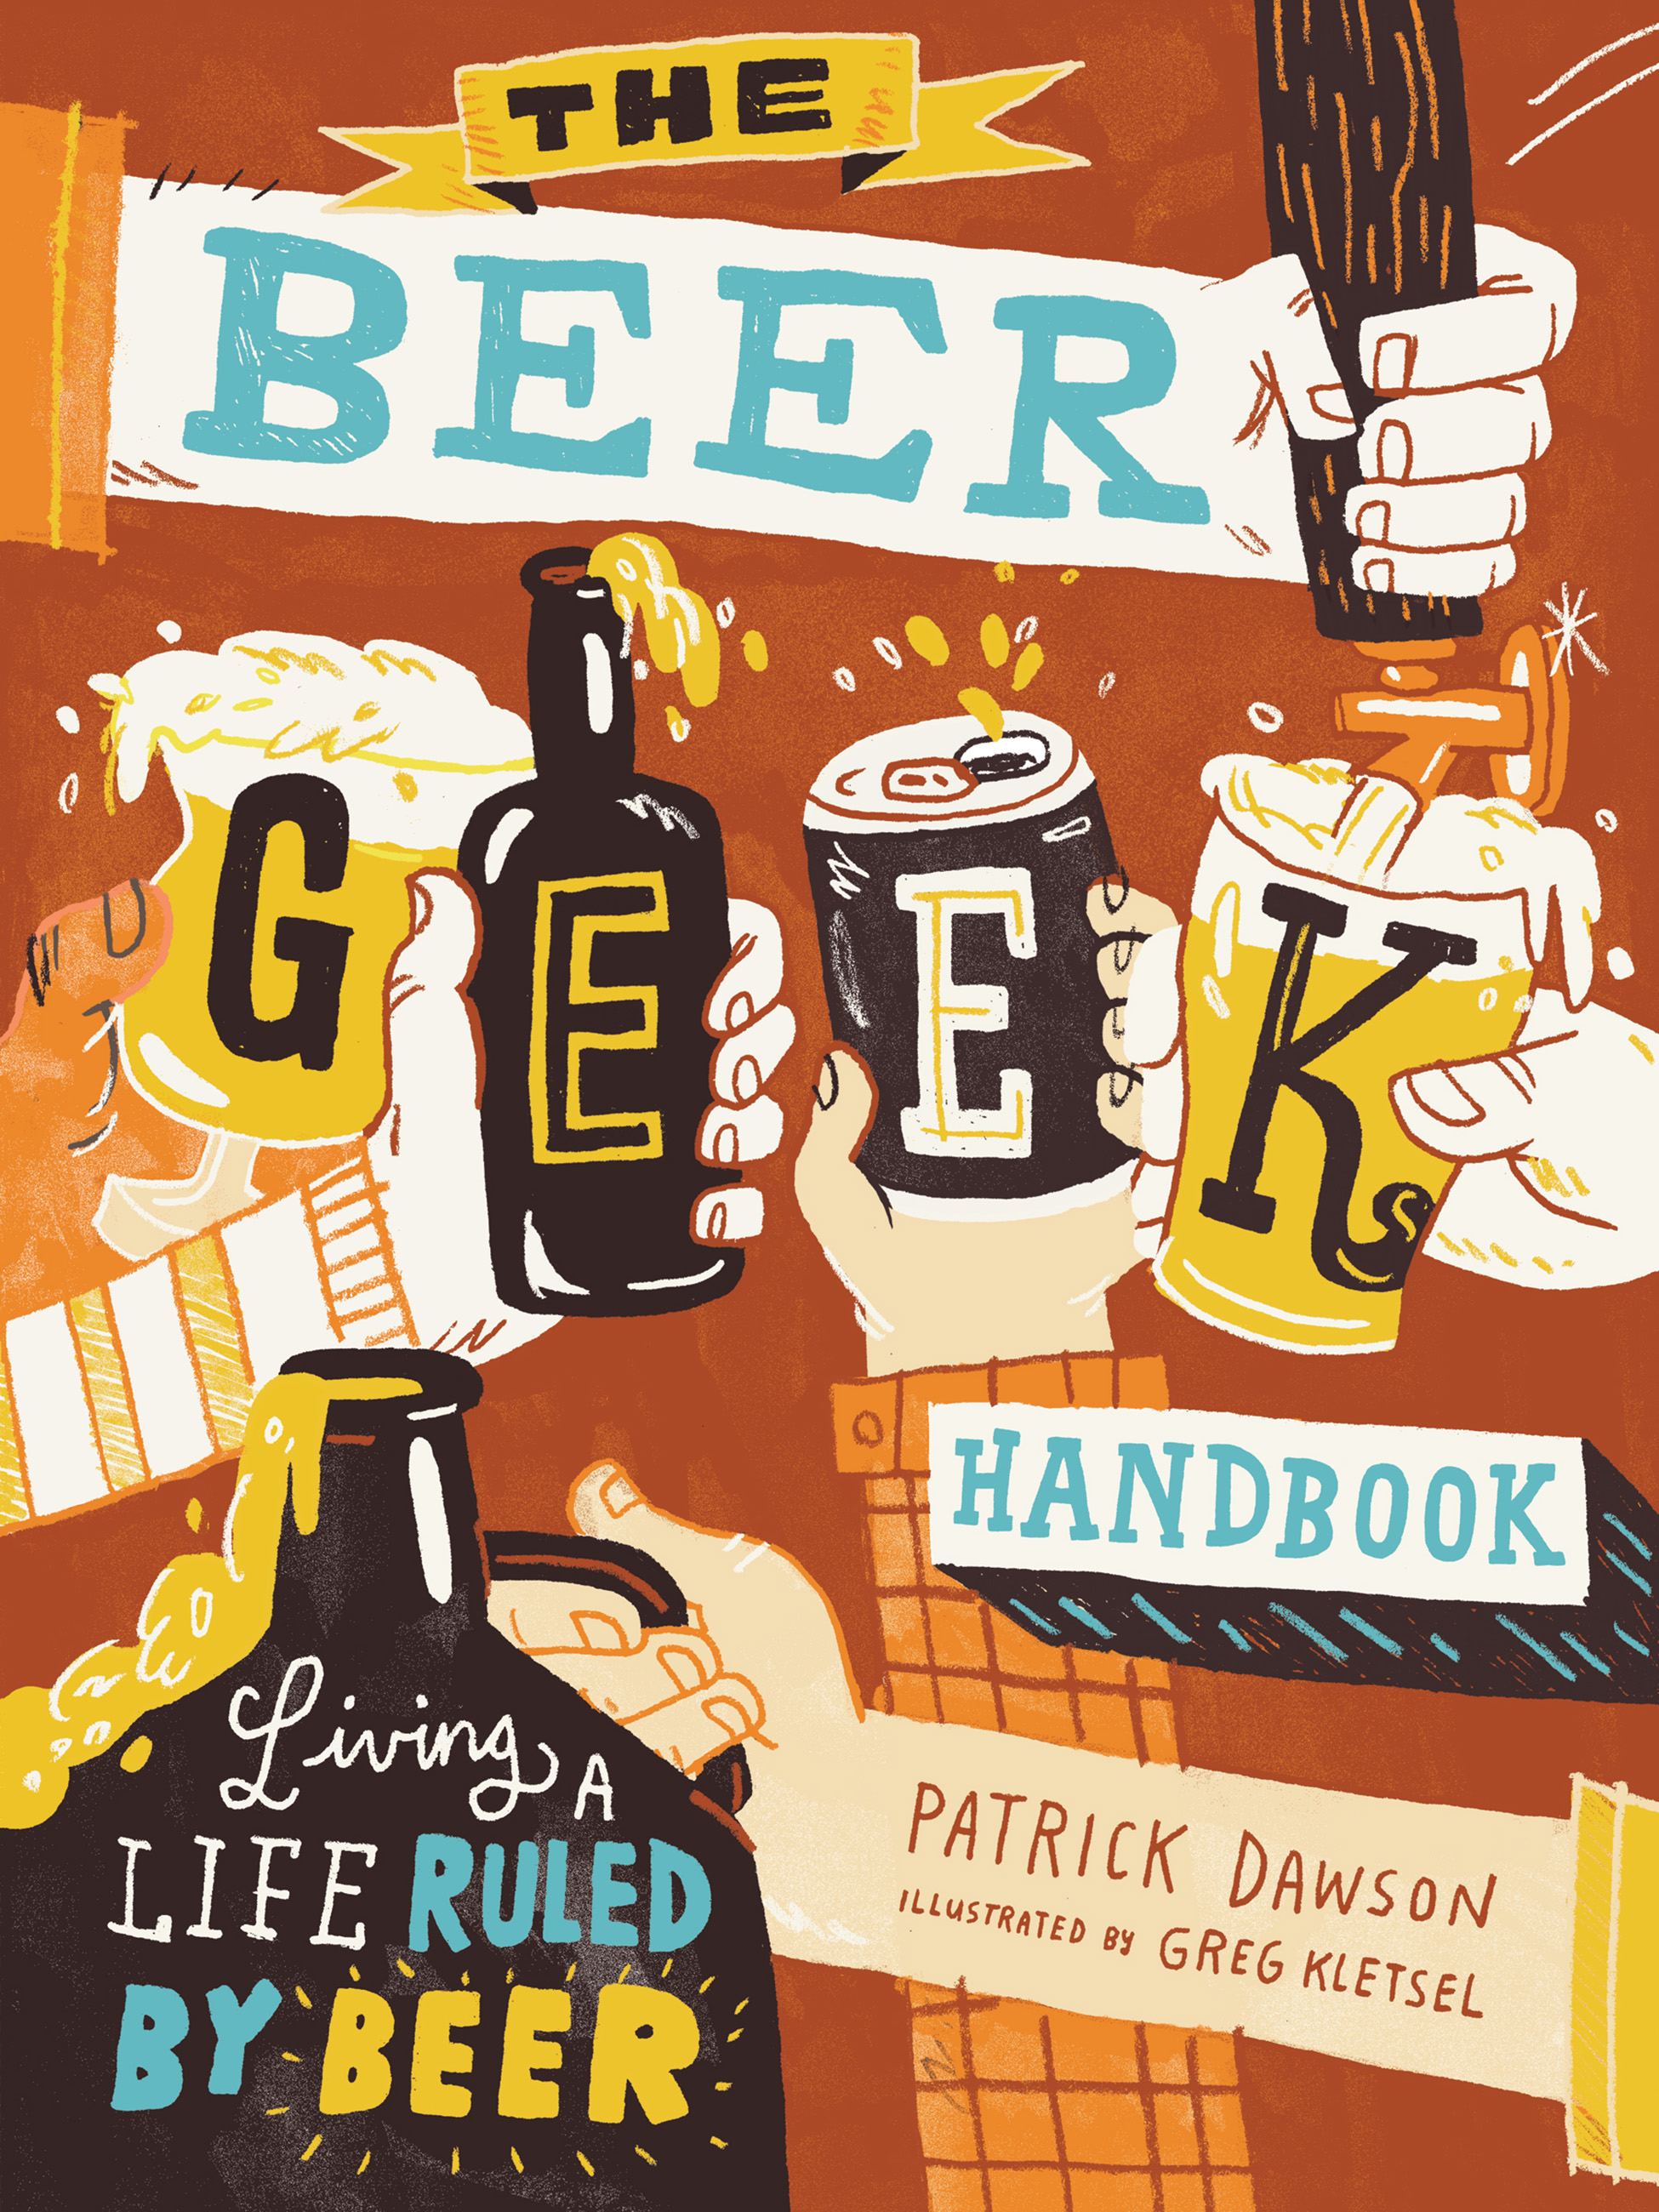 The Beer Geek Handbook Living a Life Ruled by Beer